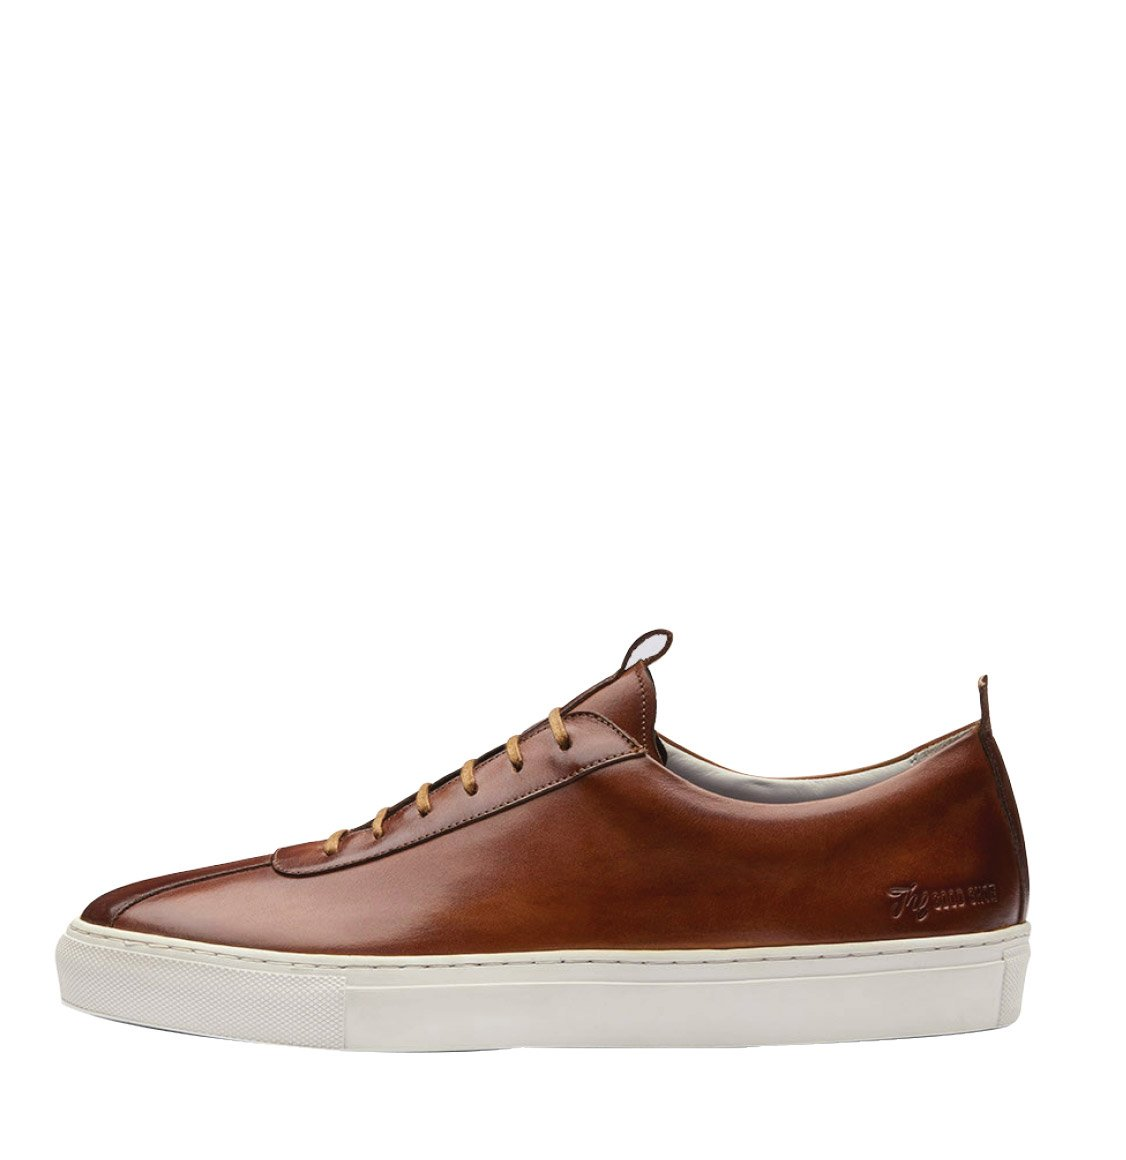 Grenson Tan Leather Handcrafted Oxford Sneaker